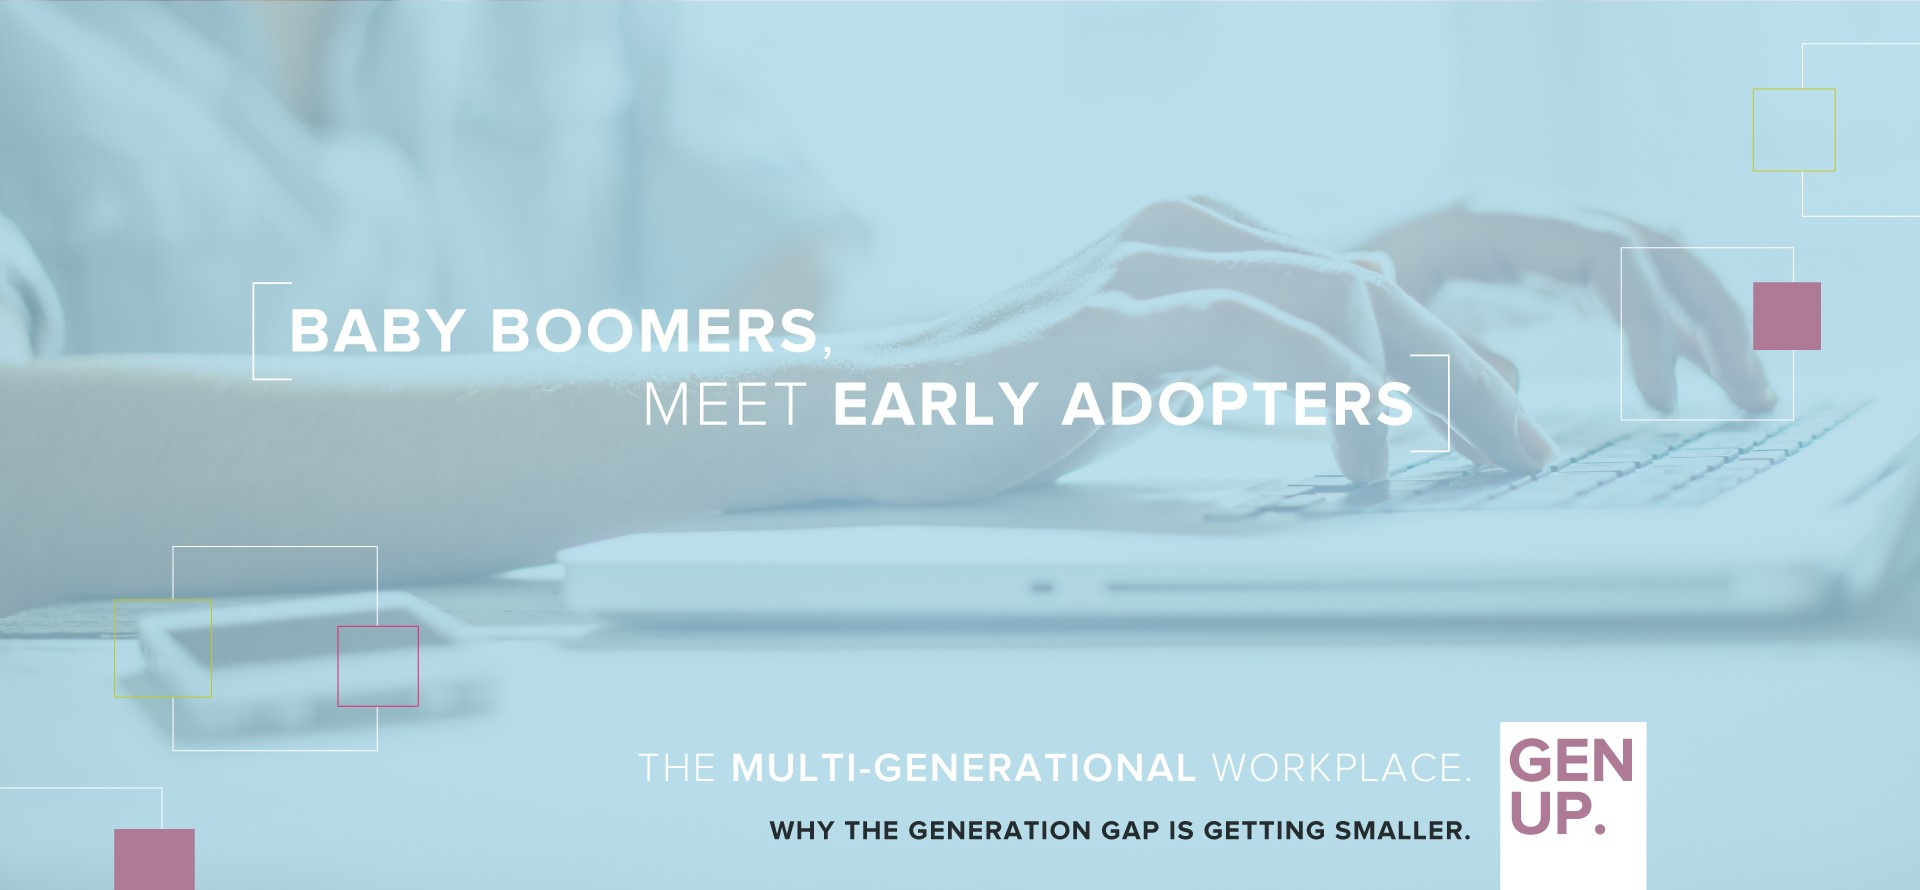 Baby Boomers meet early adopters